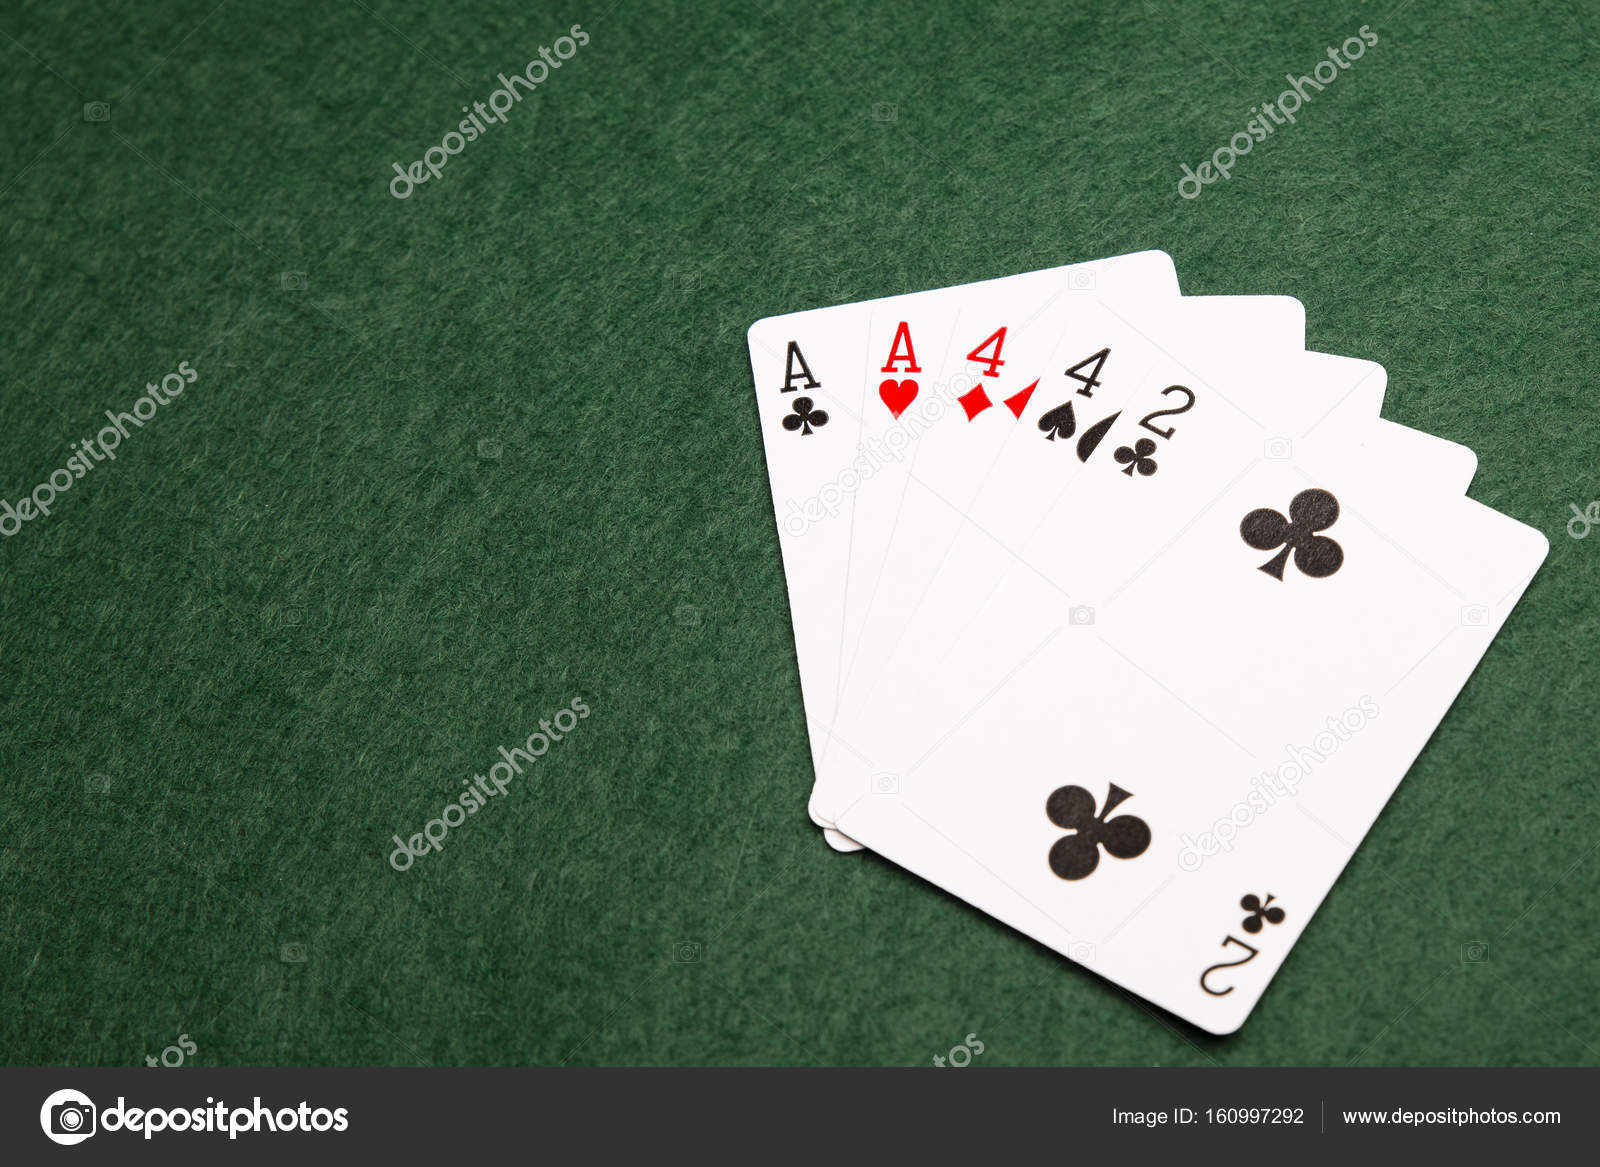 Poker two players same pair free online games win real money no deposit united states